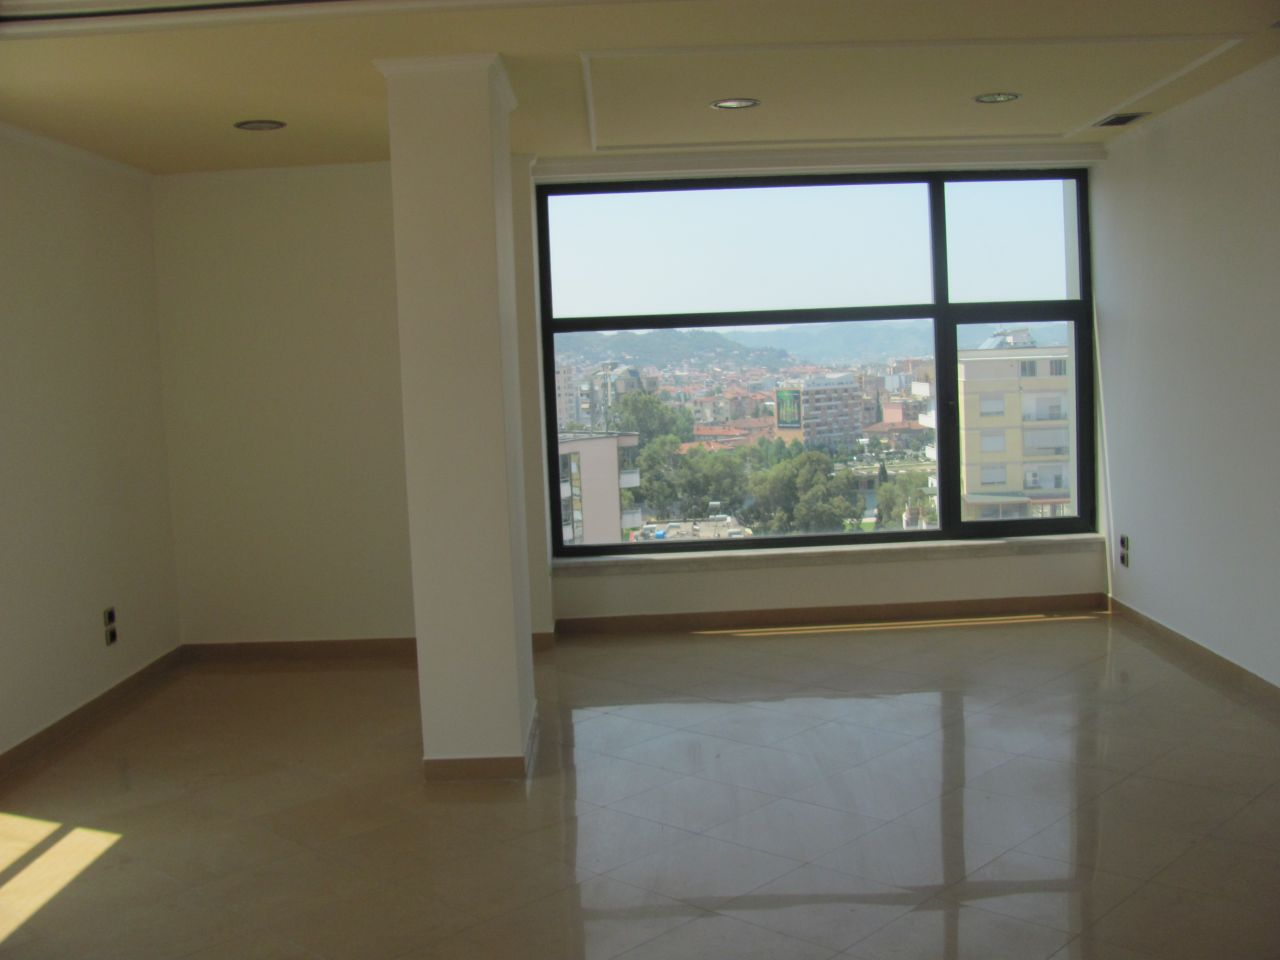 Office for Rent in the center of Tirana, the capital of Albania.